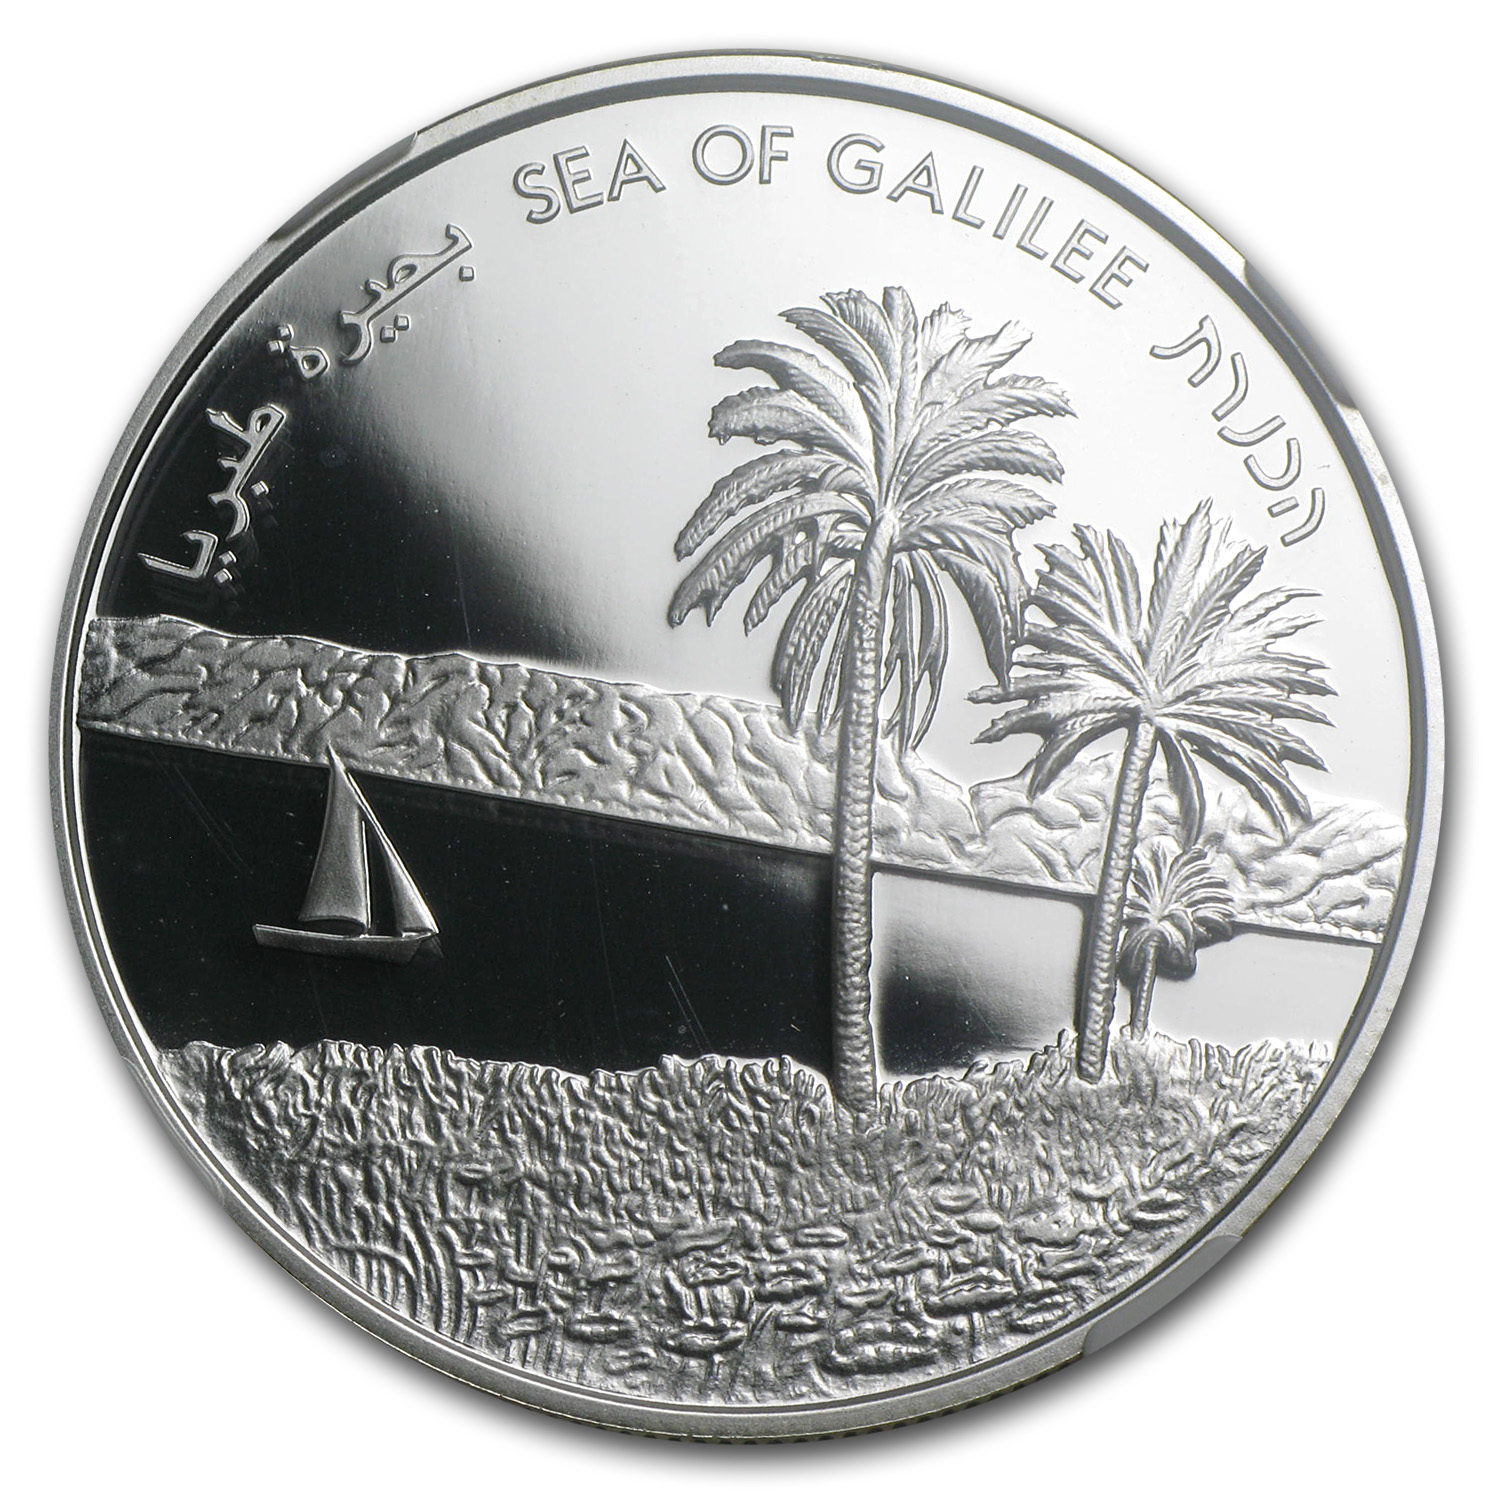 2012 Israel Silver 2 NIS Sea of Galilee PF-69 NGC